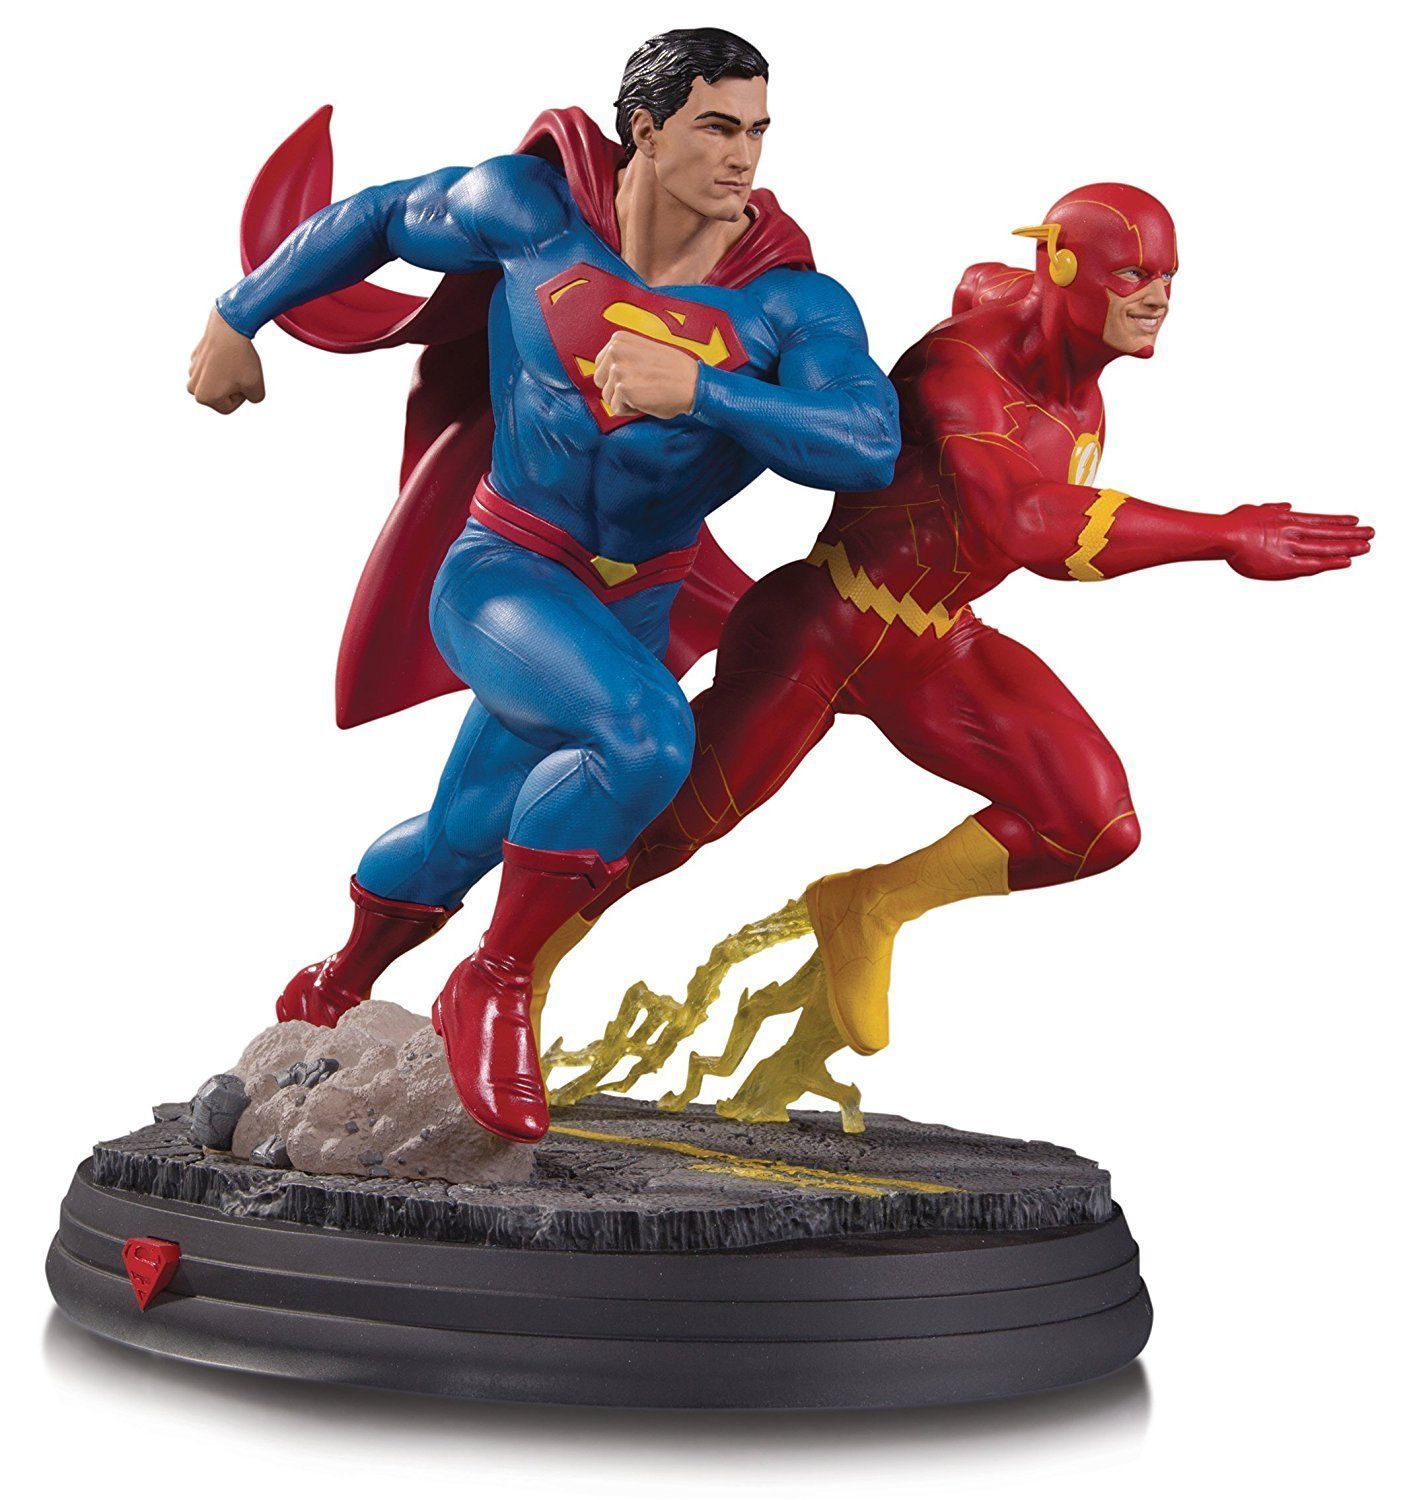 Superman Vs. the Flash Racing Resin Statue - DC Collectibles DC Gallery